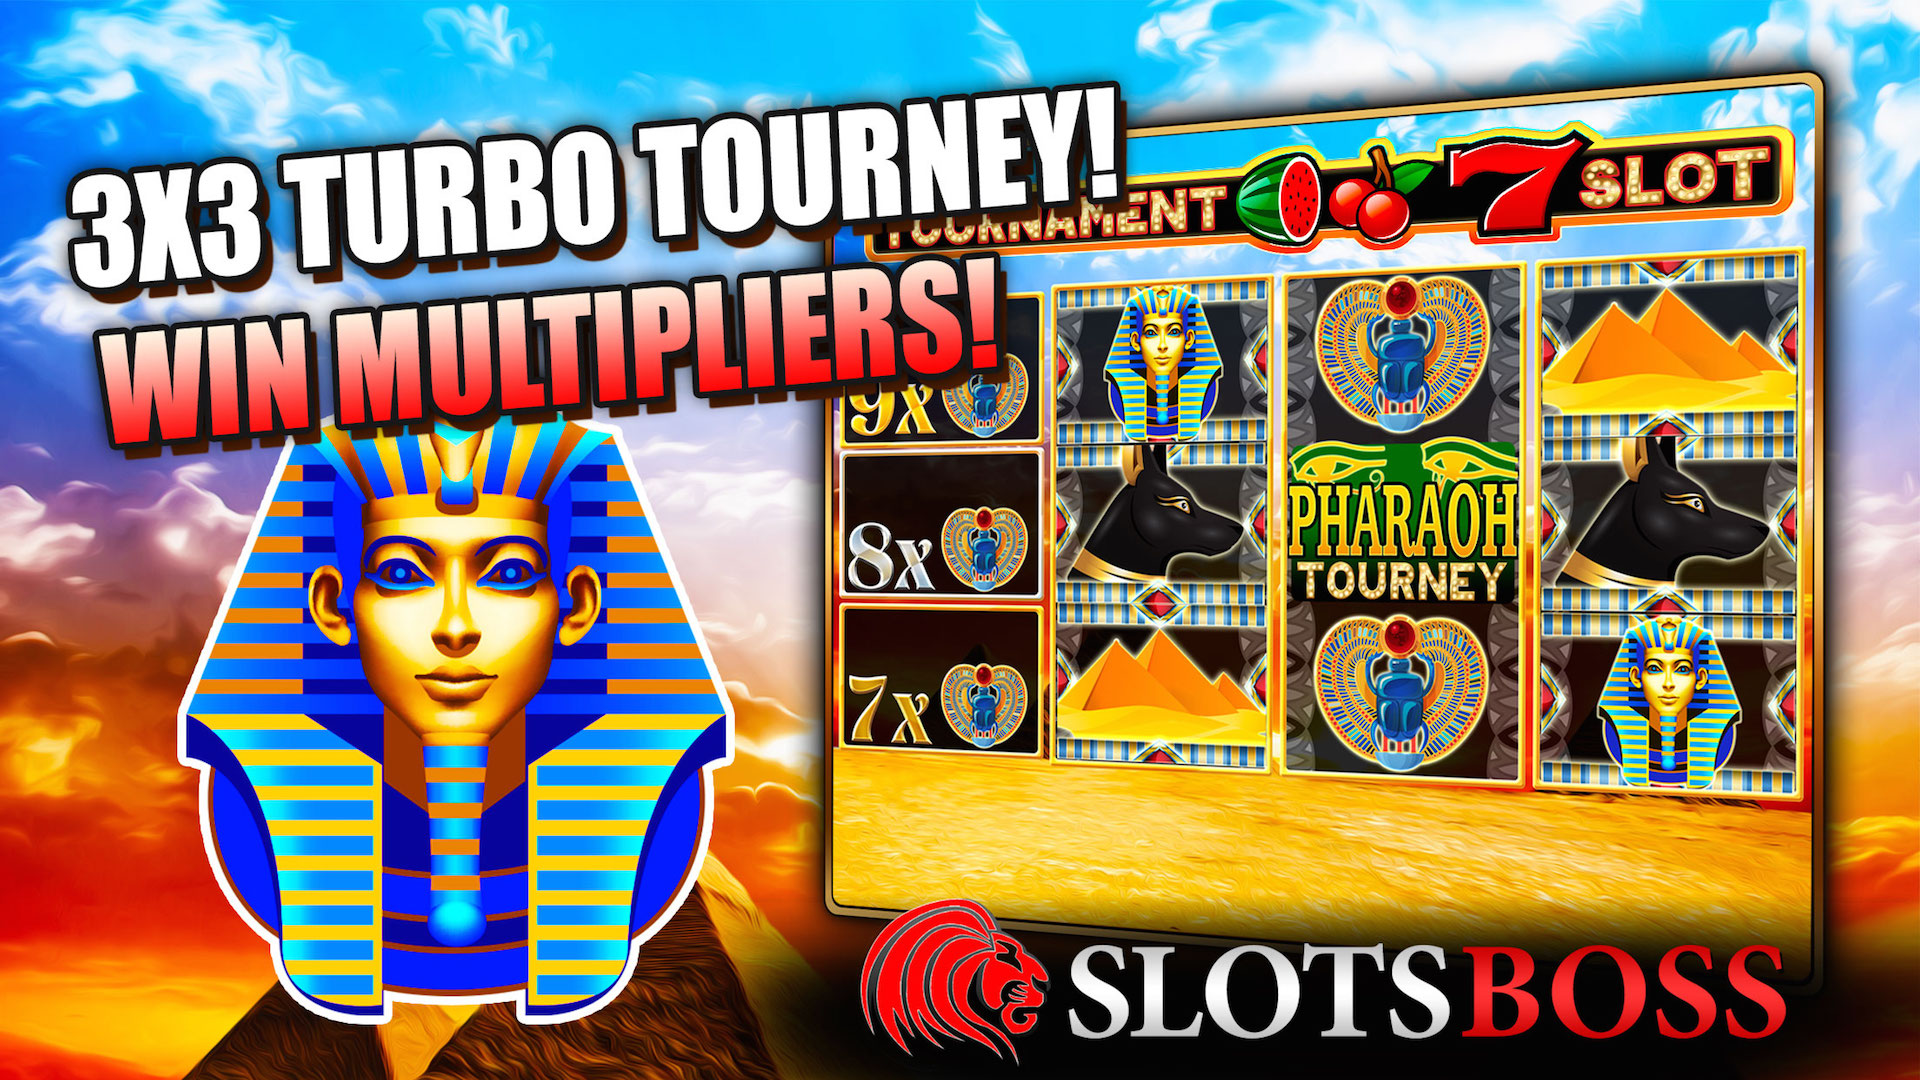 tournament slot | Euro Palace Casino Blog